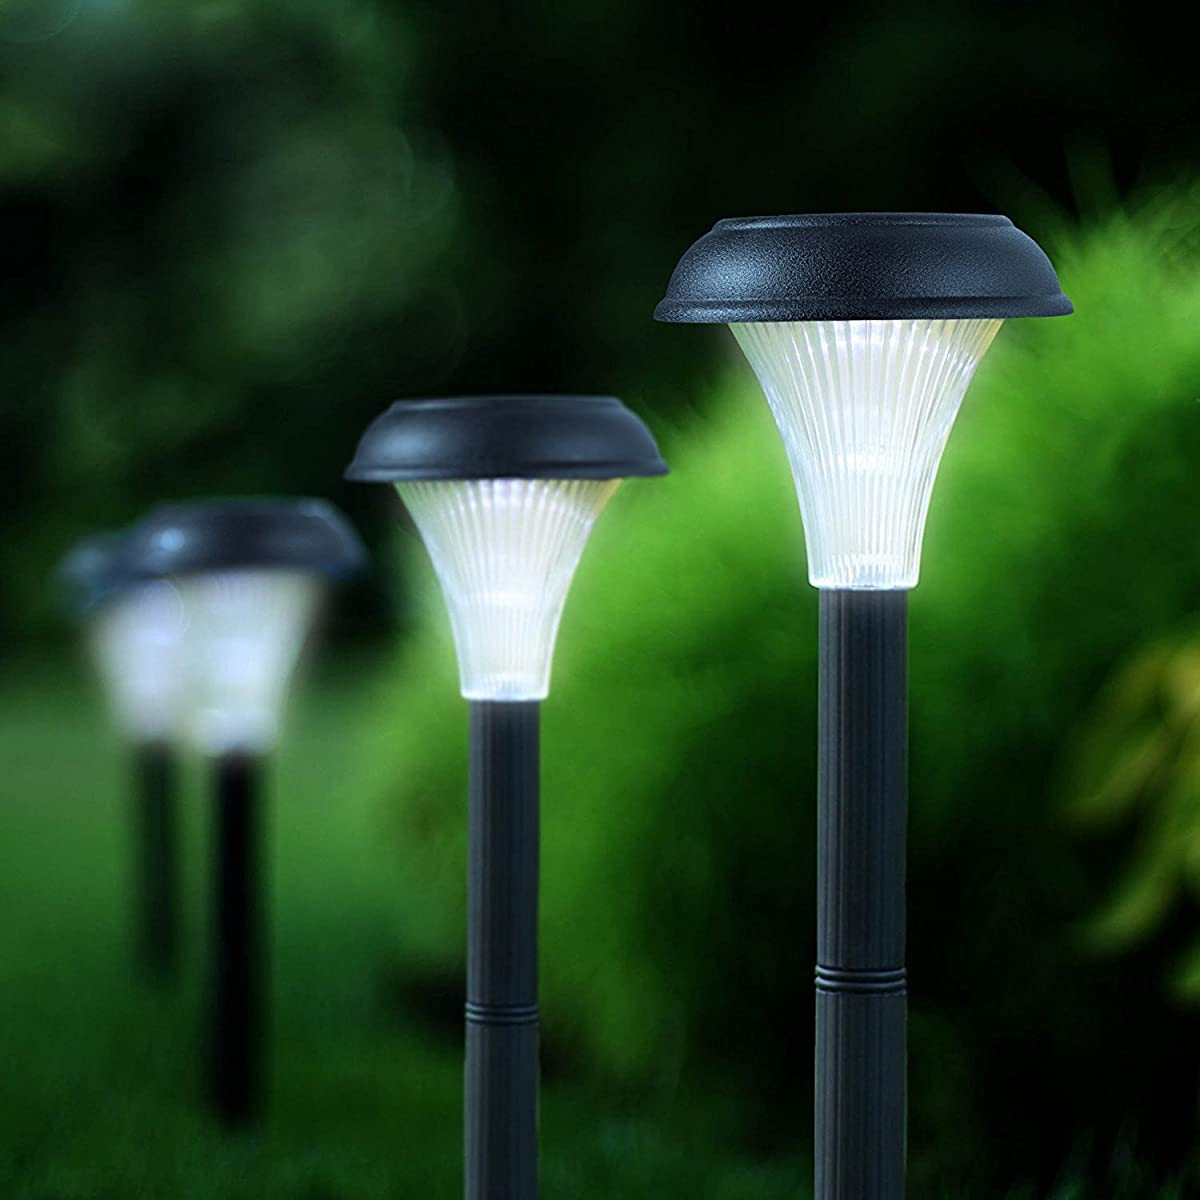 GardenBliss 10 Pack of Outdoor Solar Garden Lights for Your Yard Path Lawn and Landscape Lighting